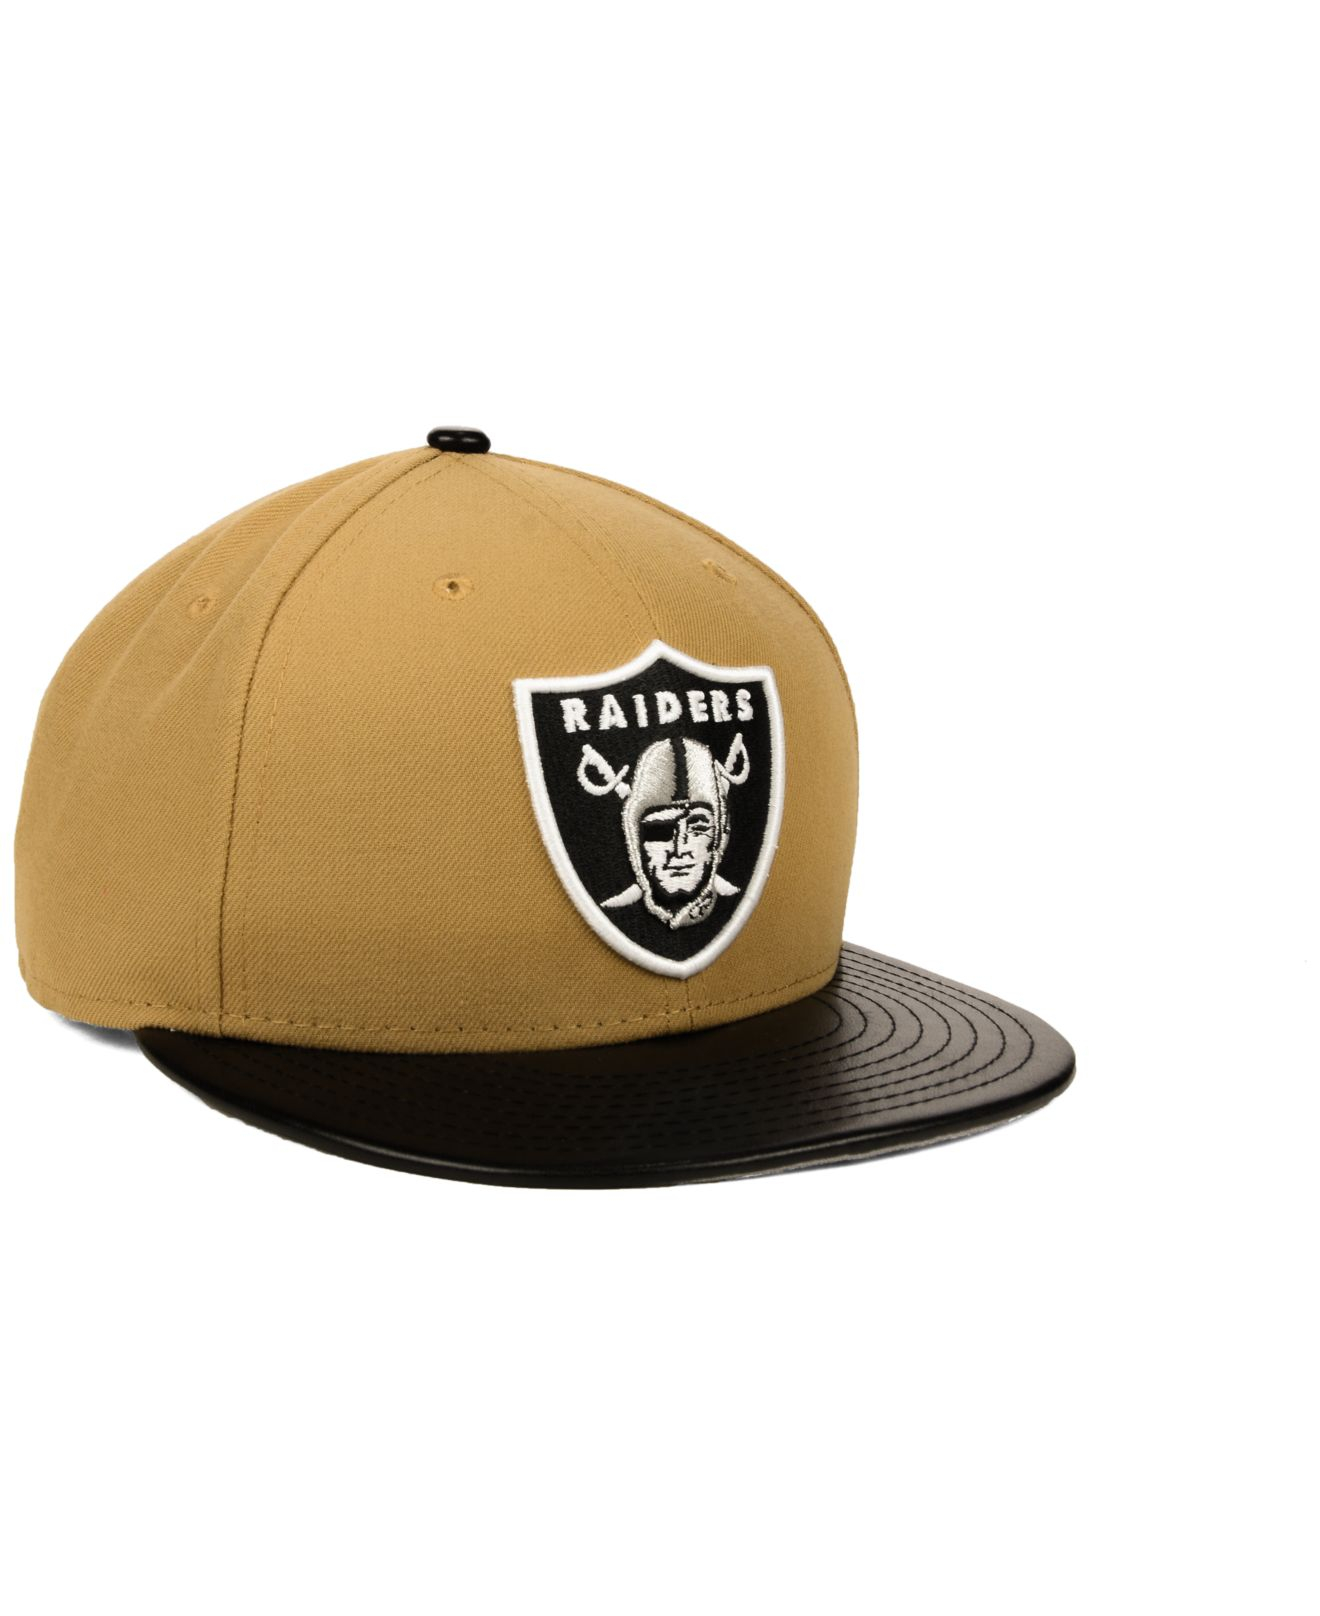 Lyst - KTZ Oakland Raiders Faux-Leather Wheat 9Fifty Snapback Cap in ... 26f048a46